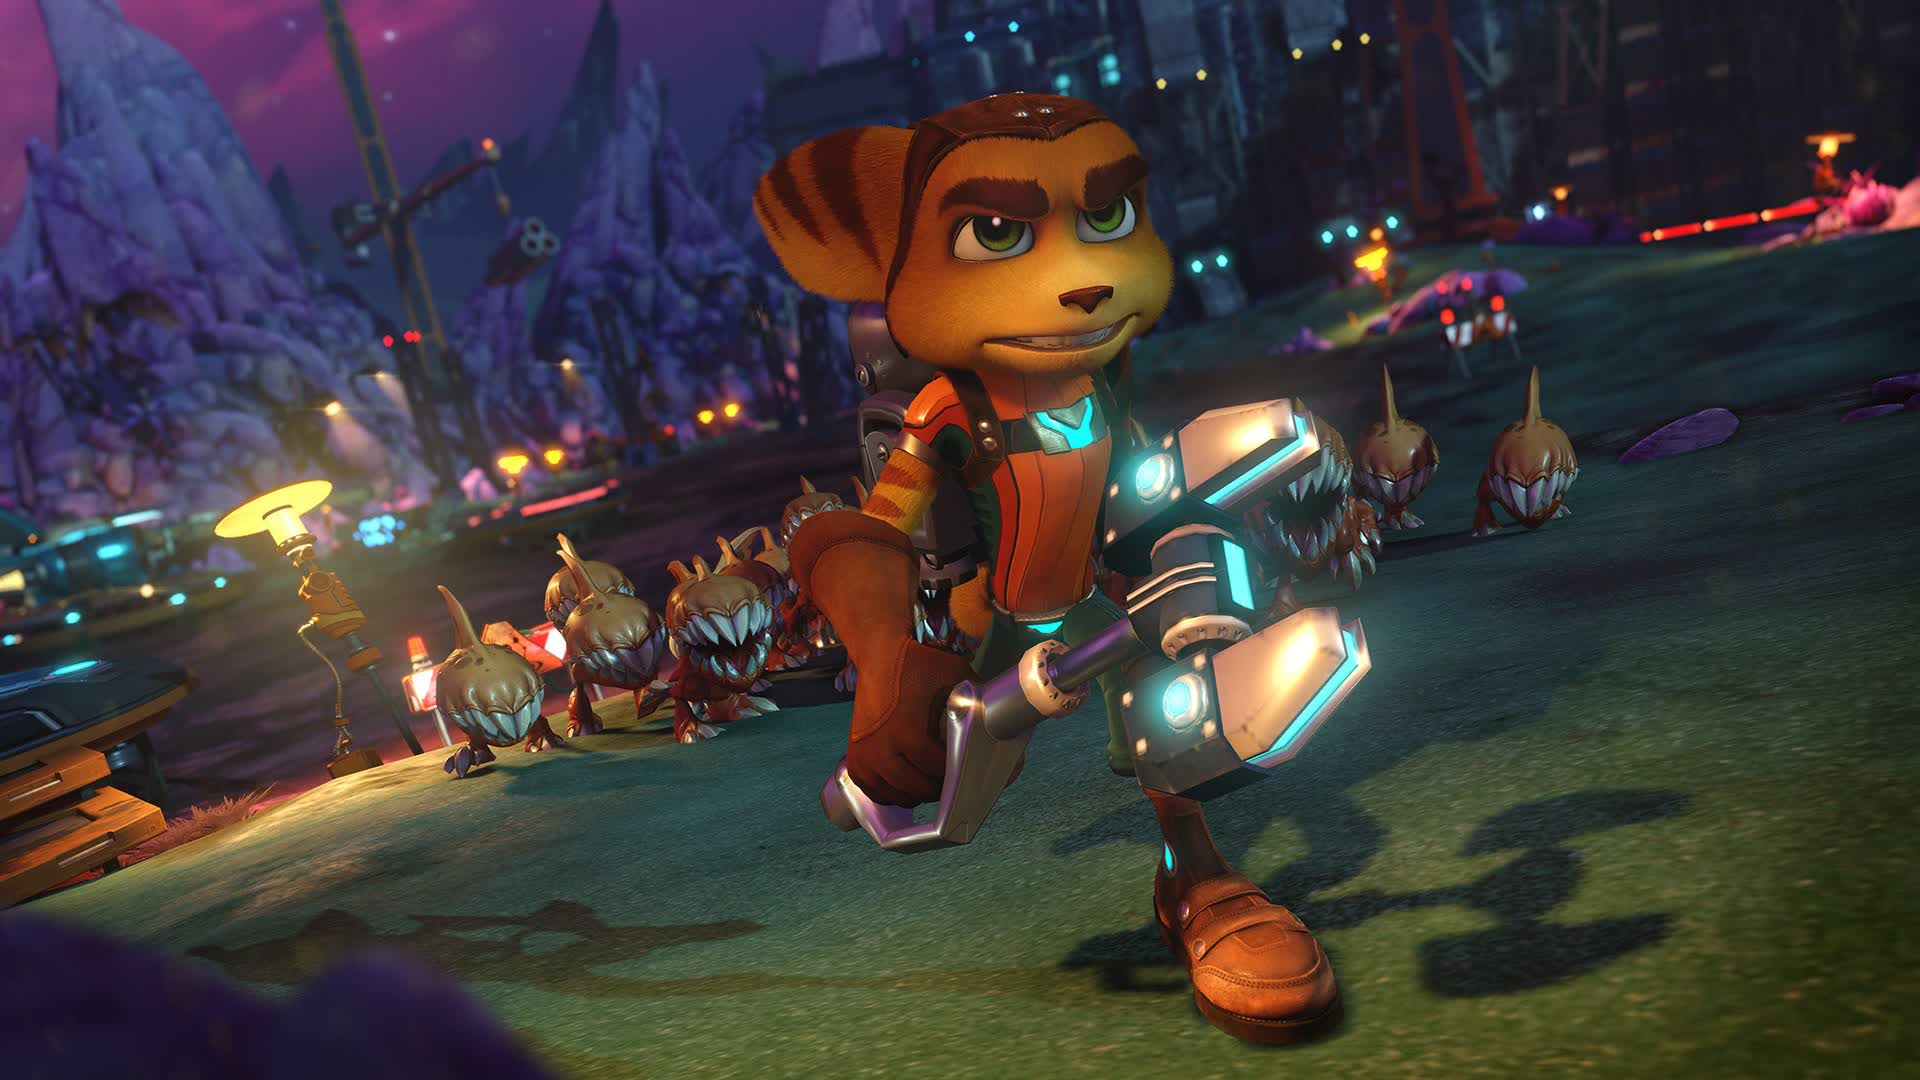 Ratchet & Clank for PS4 is still free-to-keep until March 31, will get a PS5 upgrade in April